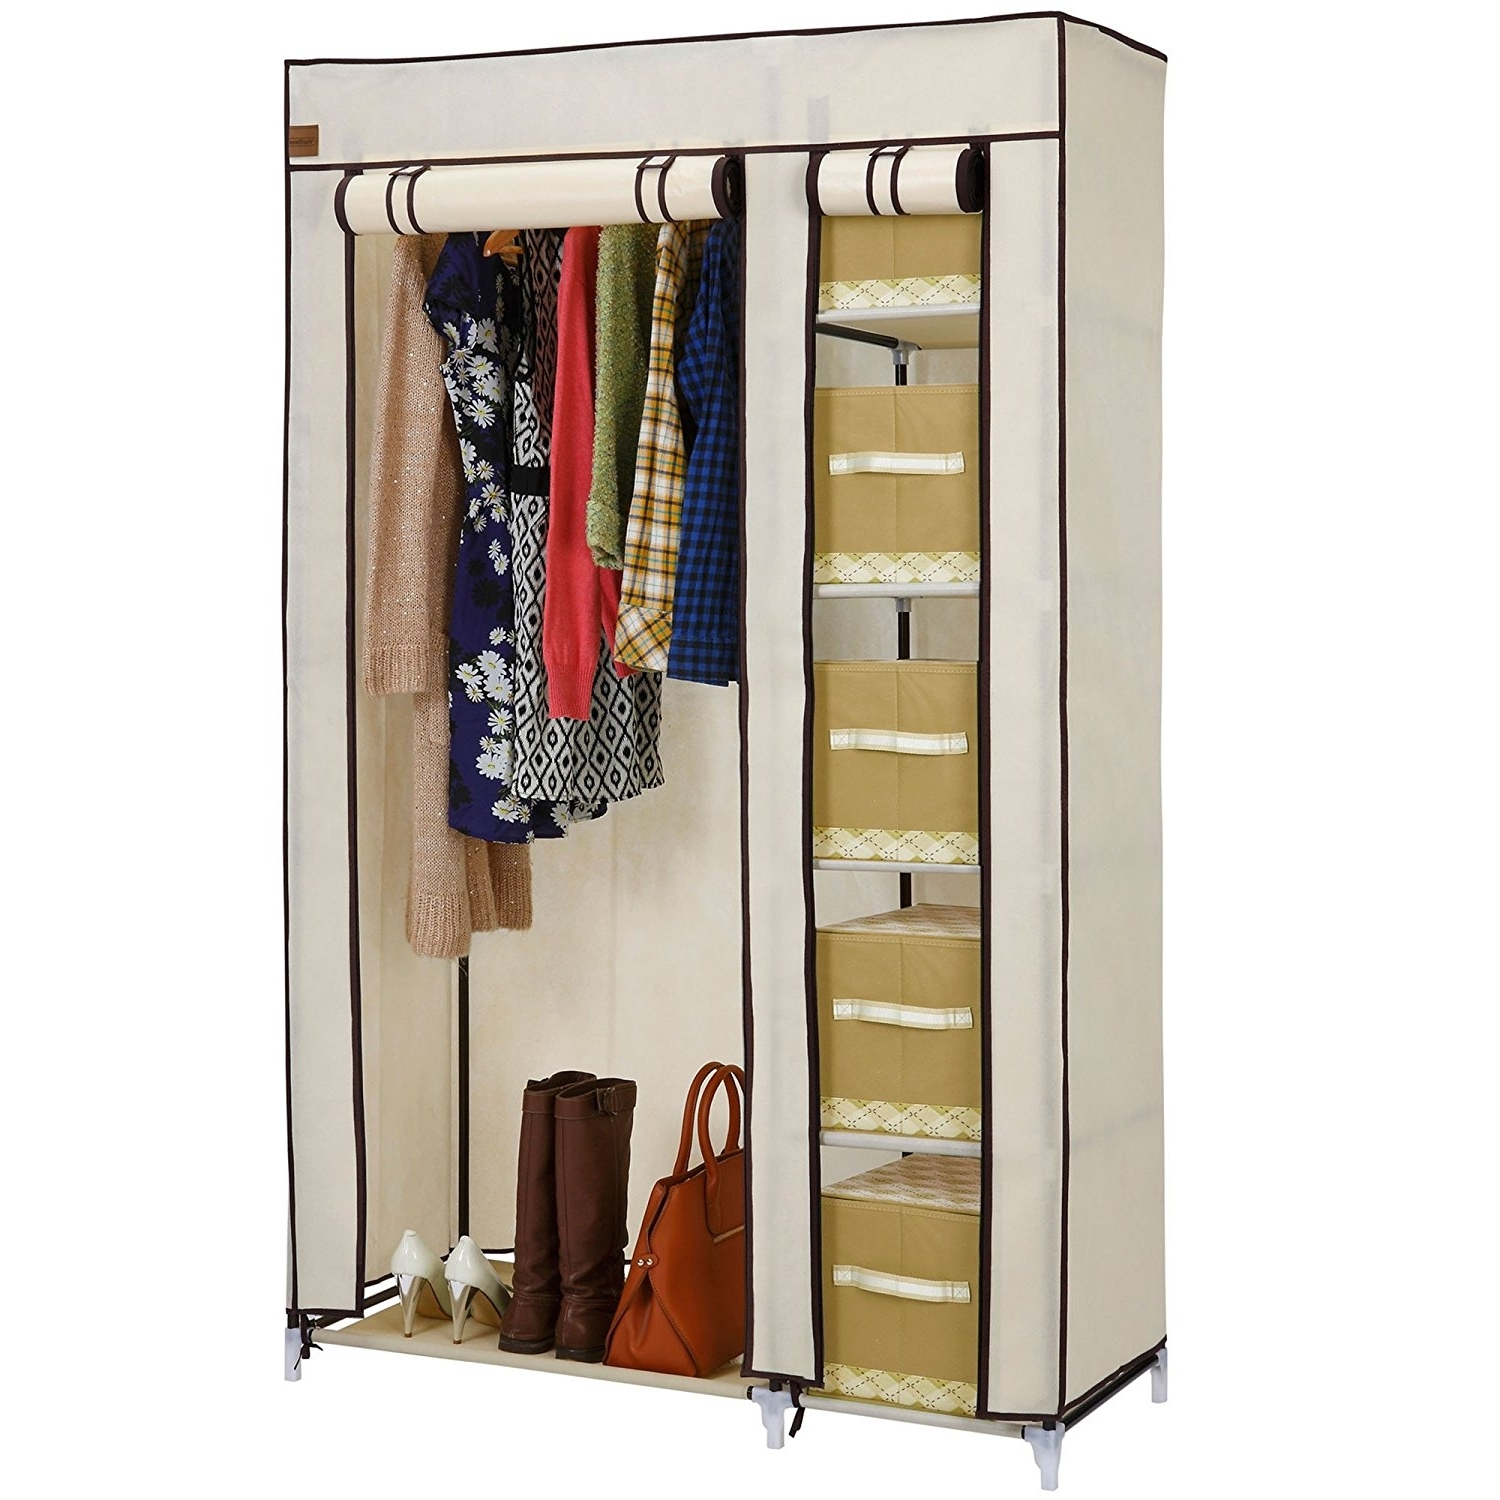 Fashionable Vonhaus Double Canvas Effect Wardrobe – Clothes Storage Cupboard For Double Rail Wardrobes (View 2 of 15)